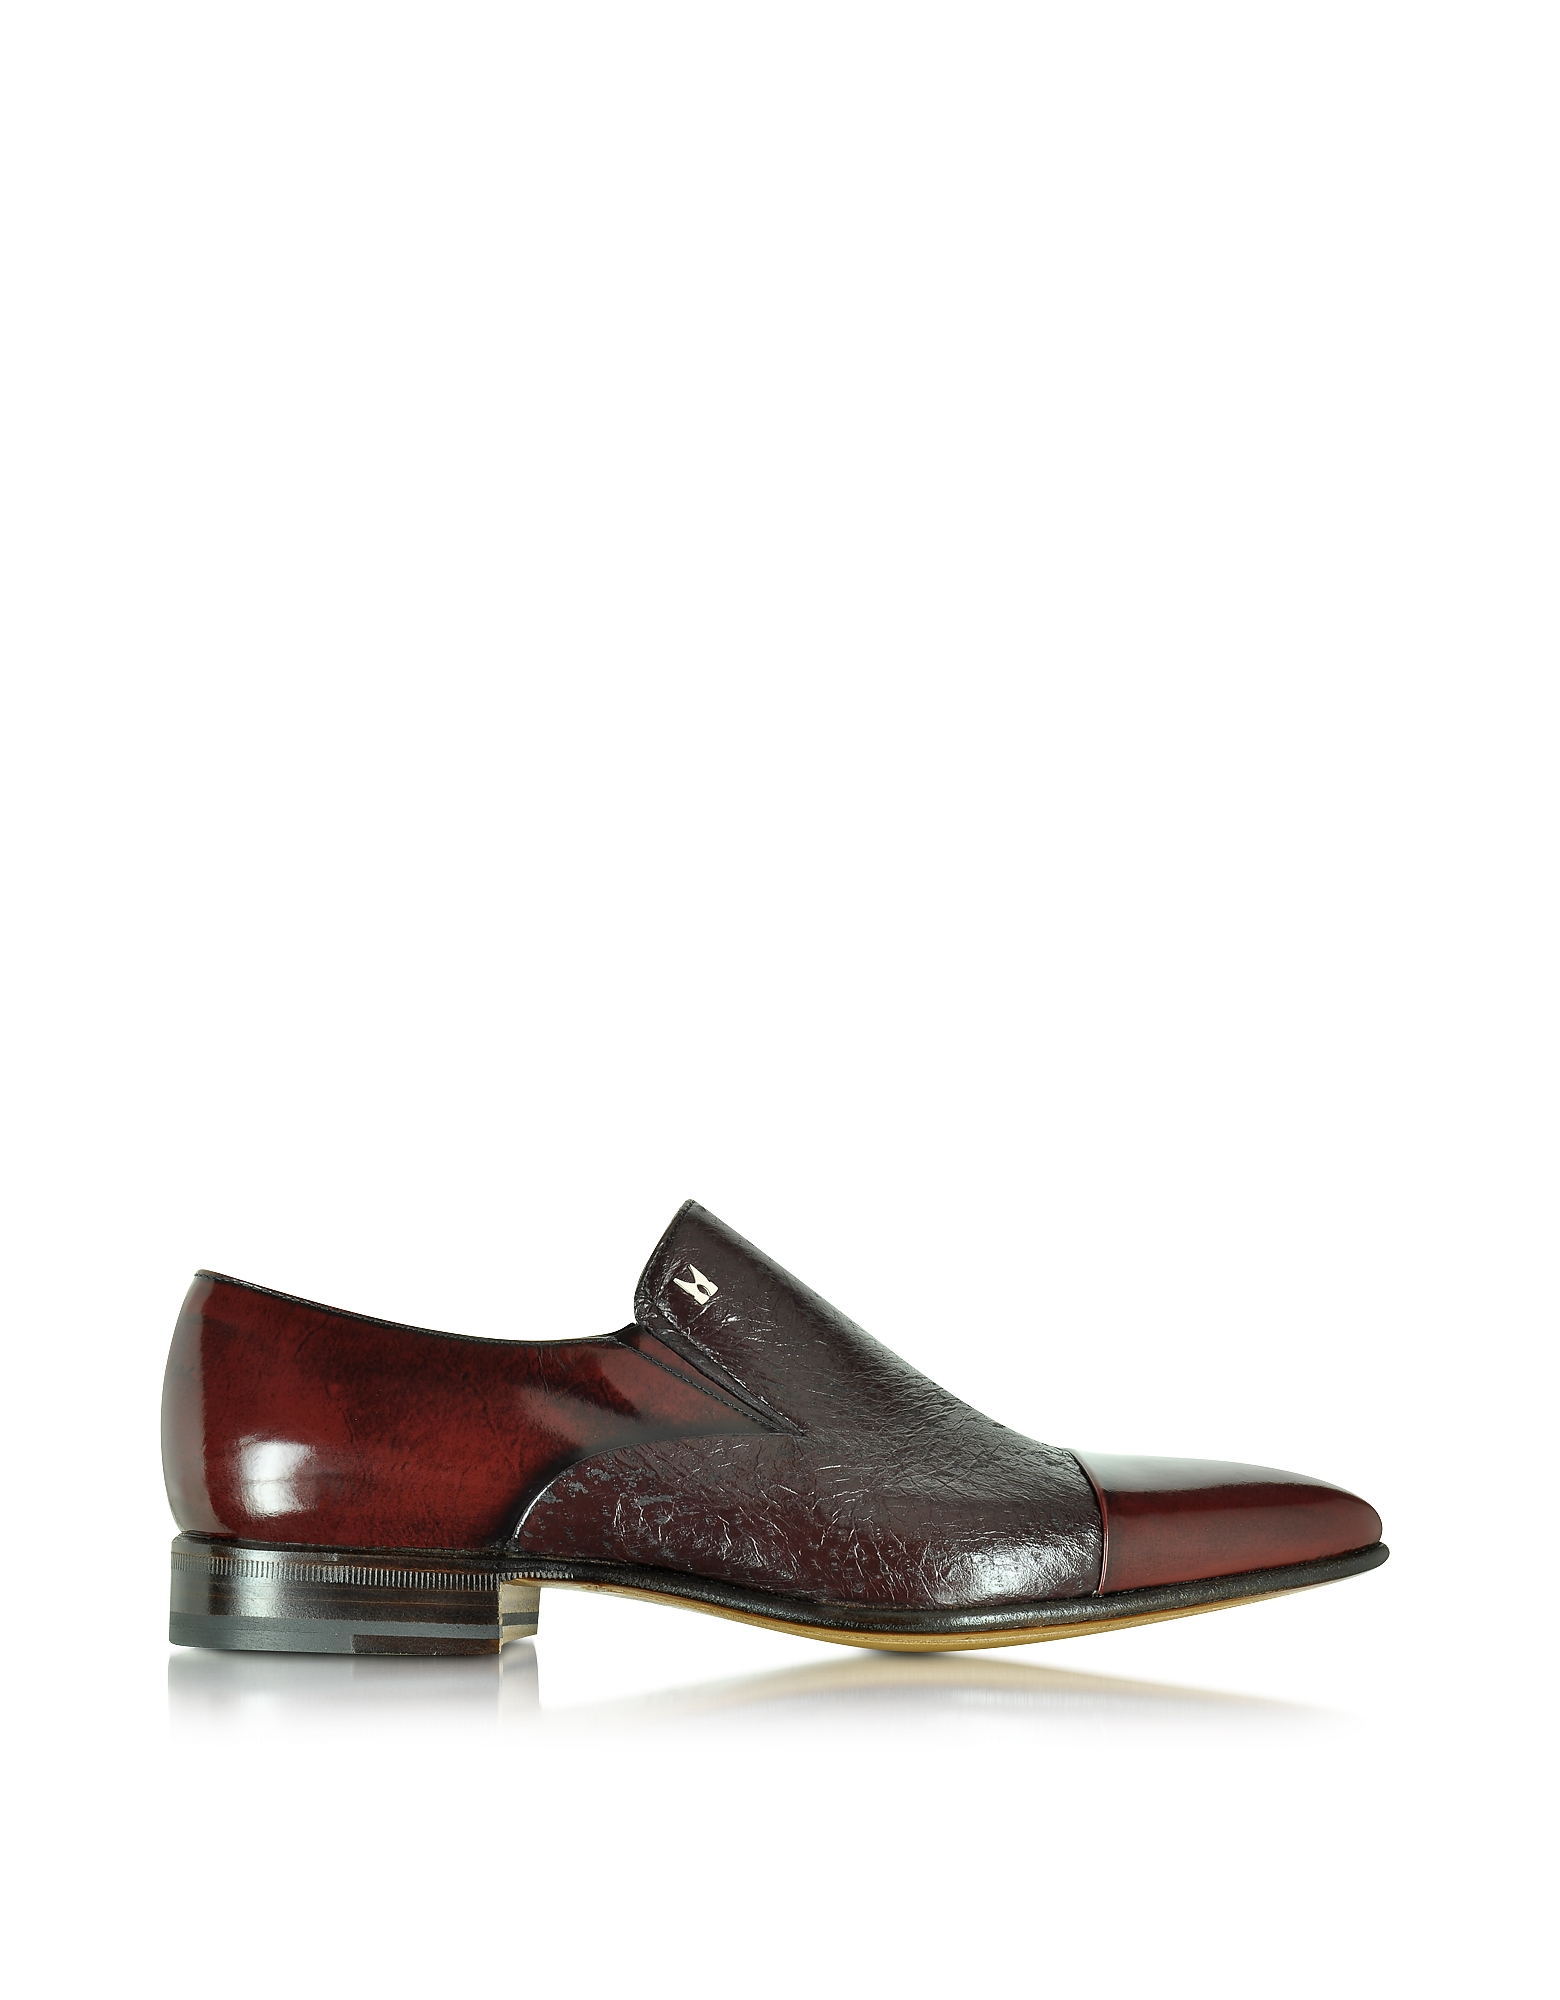 Moreschi Shoes, Metz Burgundy Leather Slip on Loafer